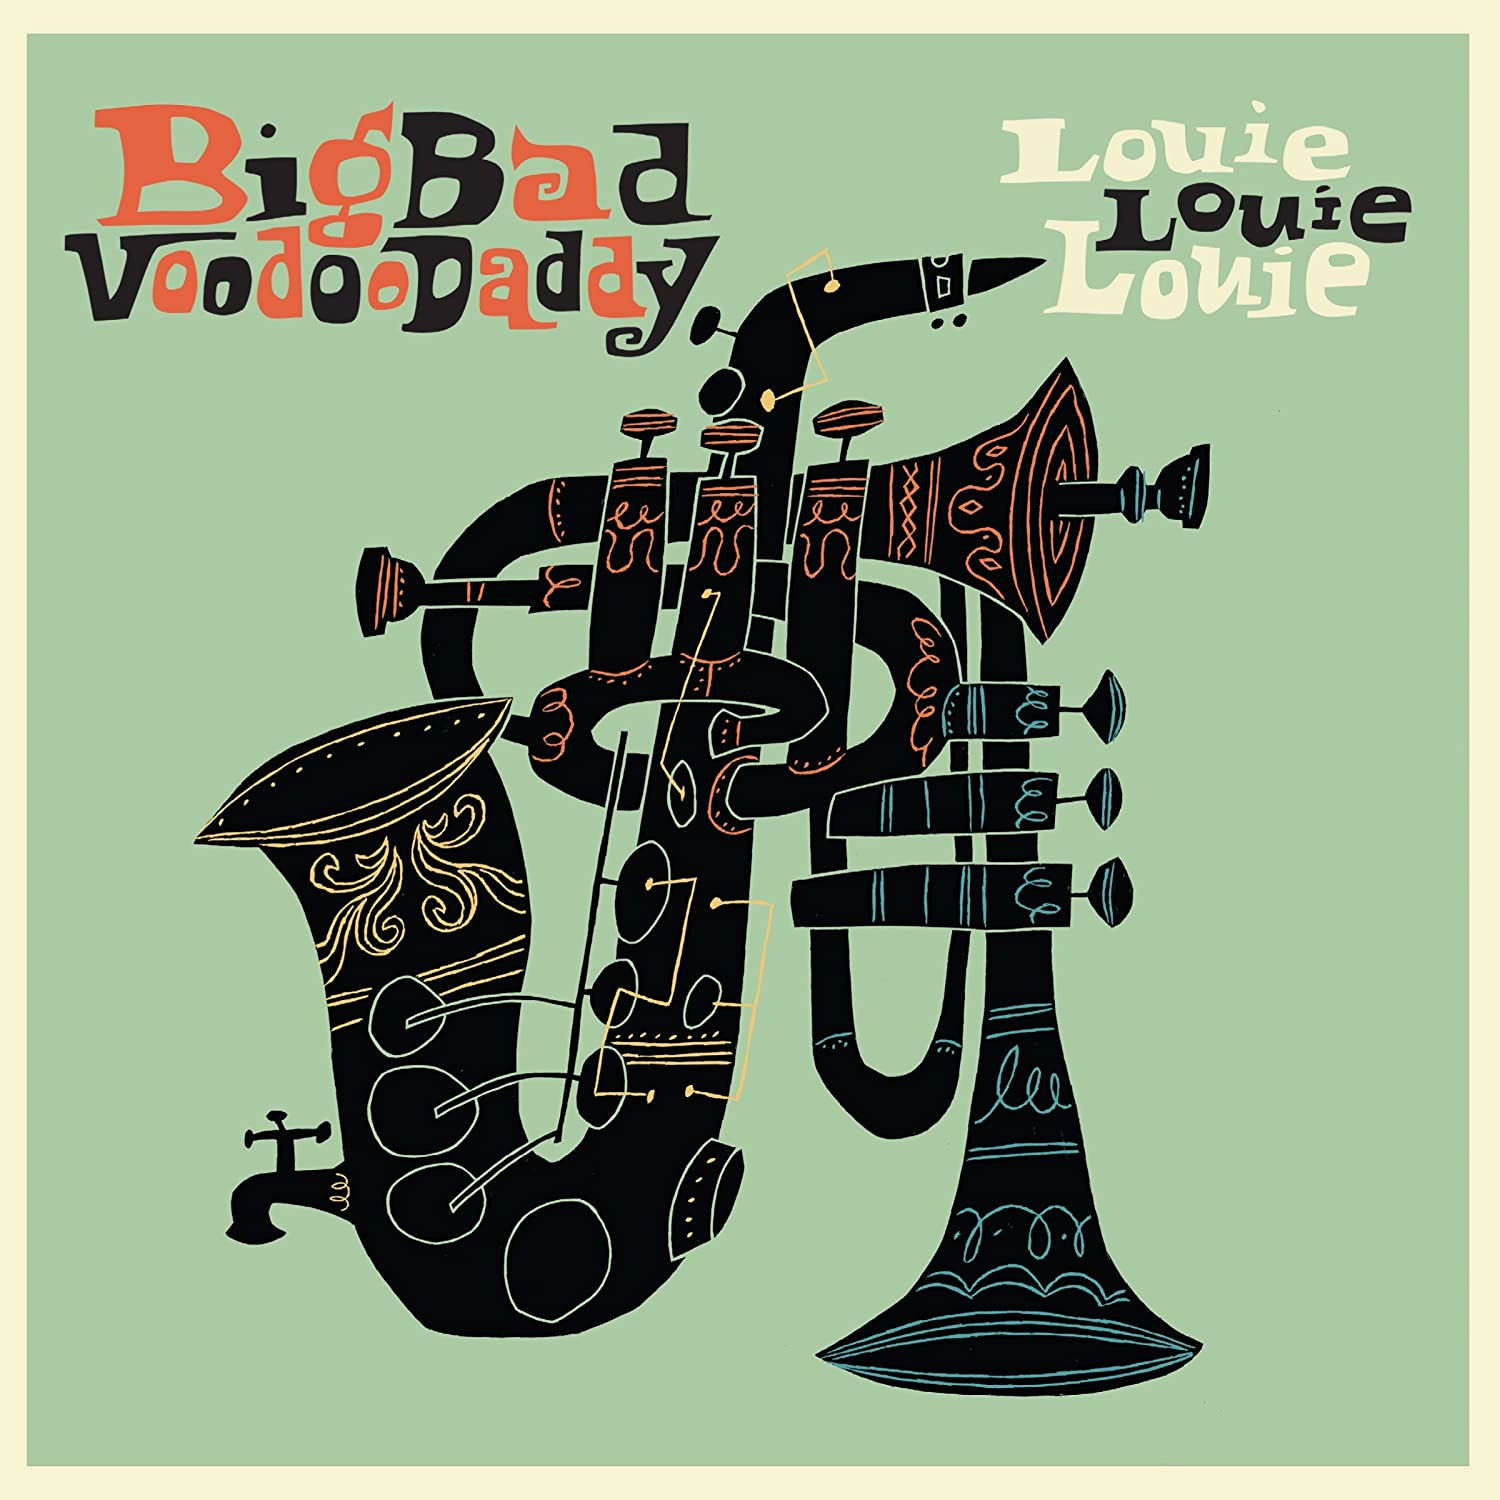 Big Bad Voodoo Daddy - Louie Louie Louie - Amazon.com Music